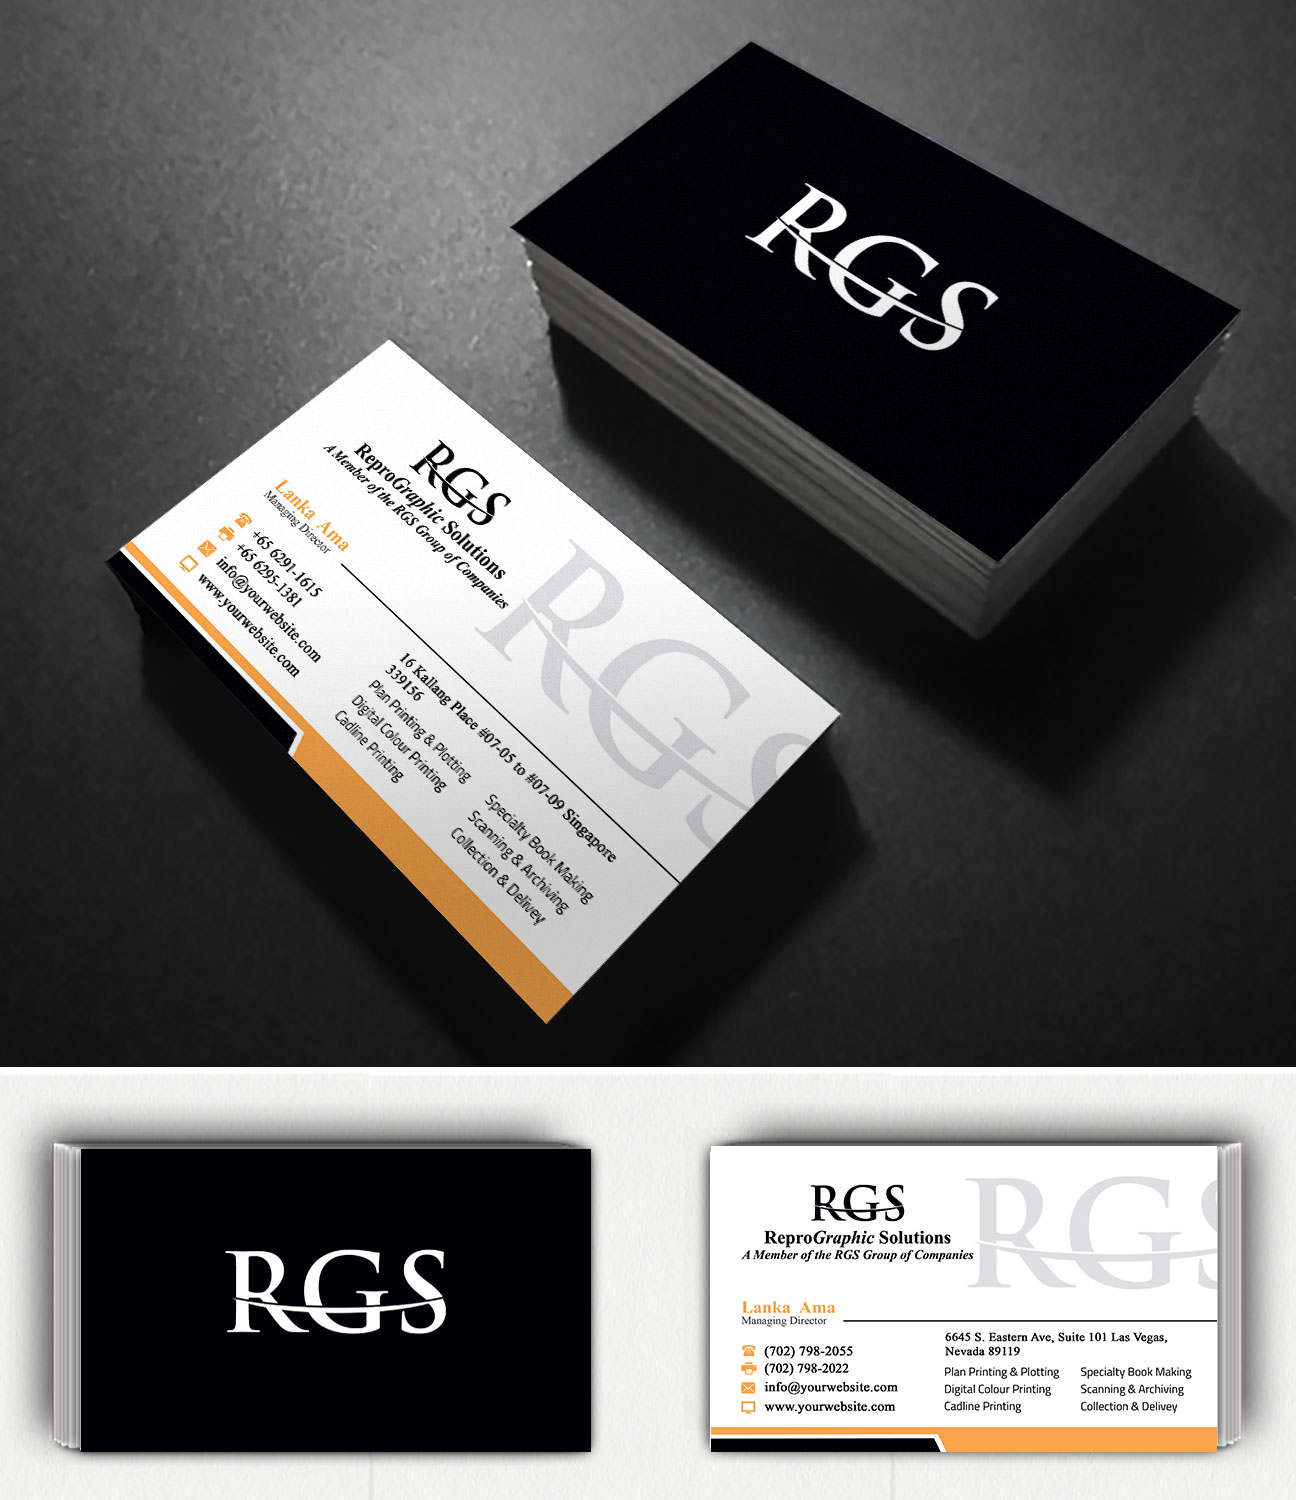 Elegant professional printing business card design for a company business card design by creation lanka for this project design 4717982 reheart Gallery